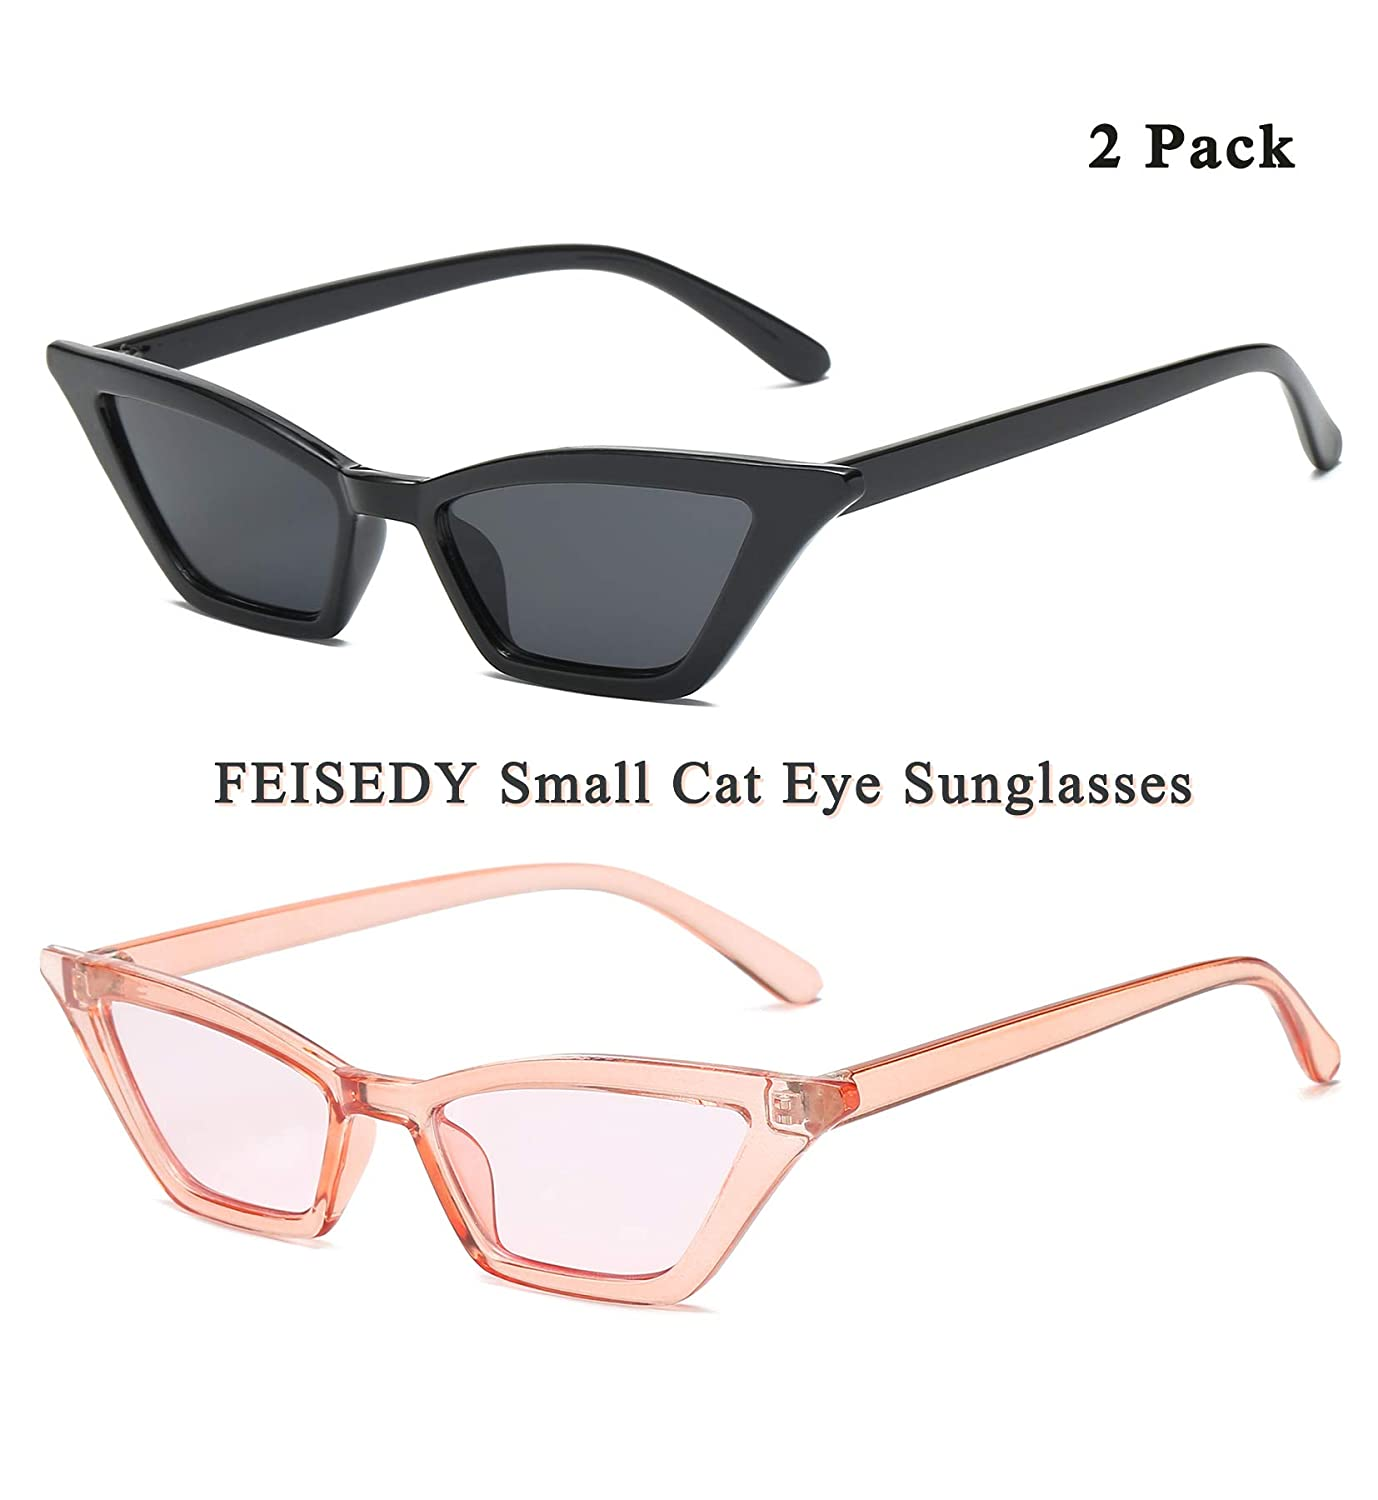 0714955cae non-polarized. Lens width  53 millimeters. Lens height  28 millimeters.  Light weight acetate Frame is Durable and Flattering